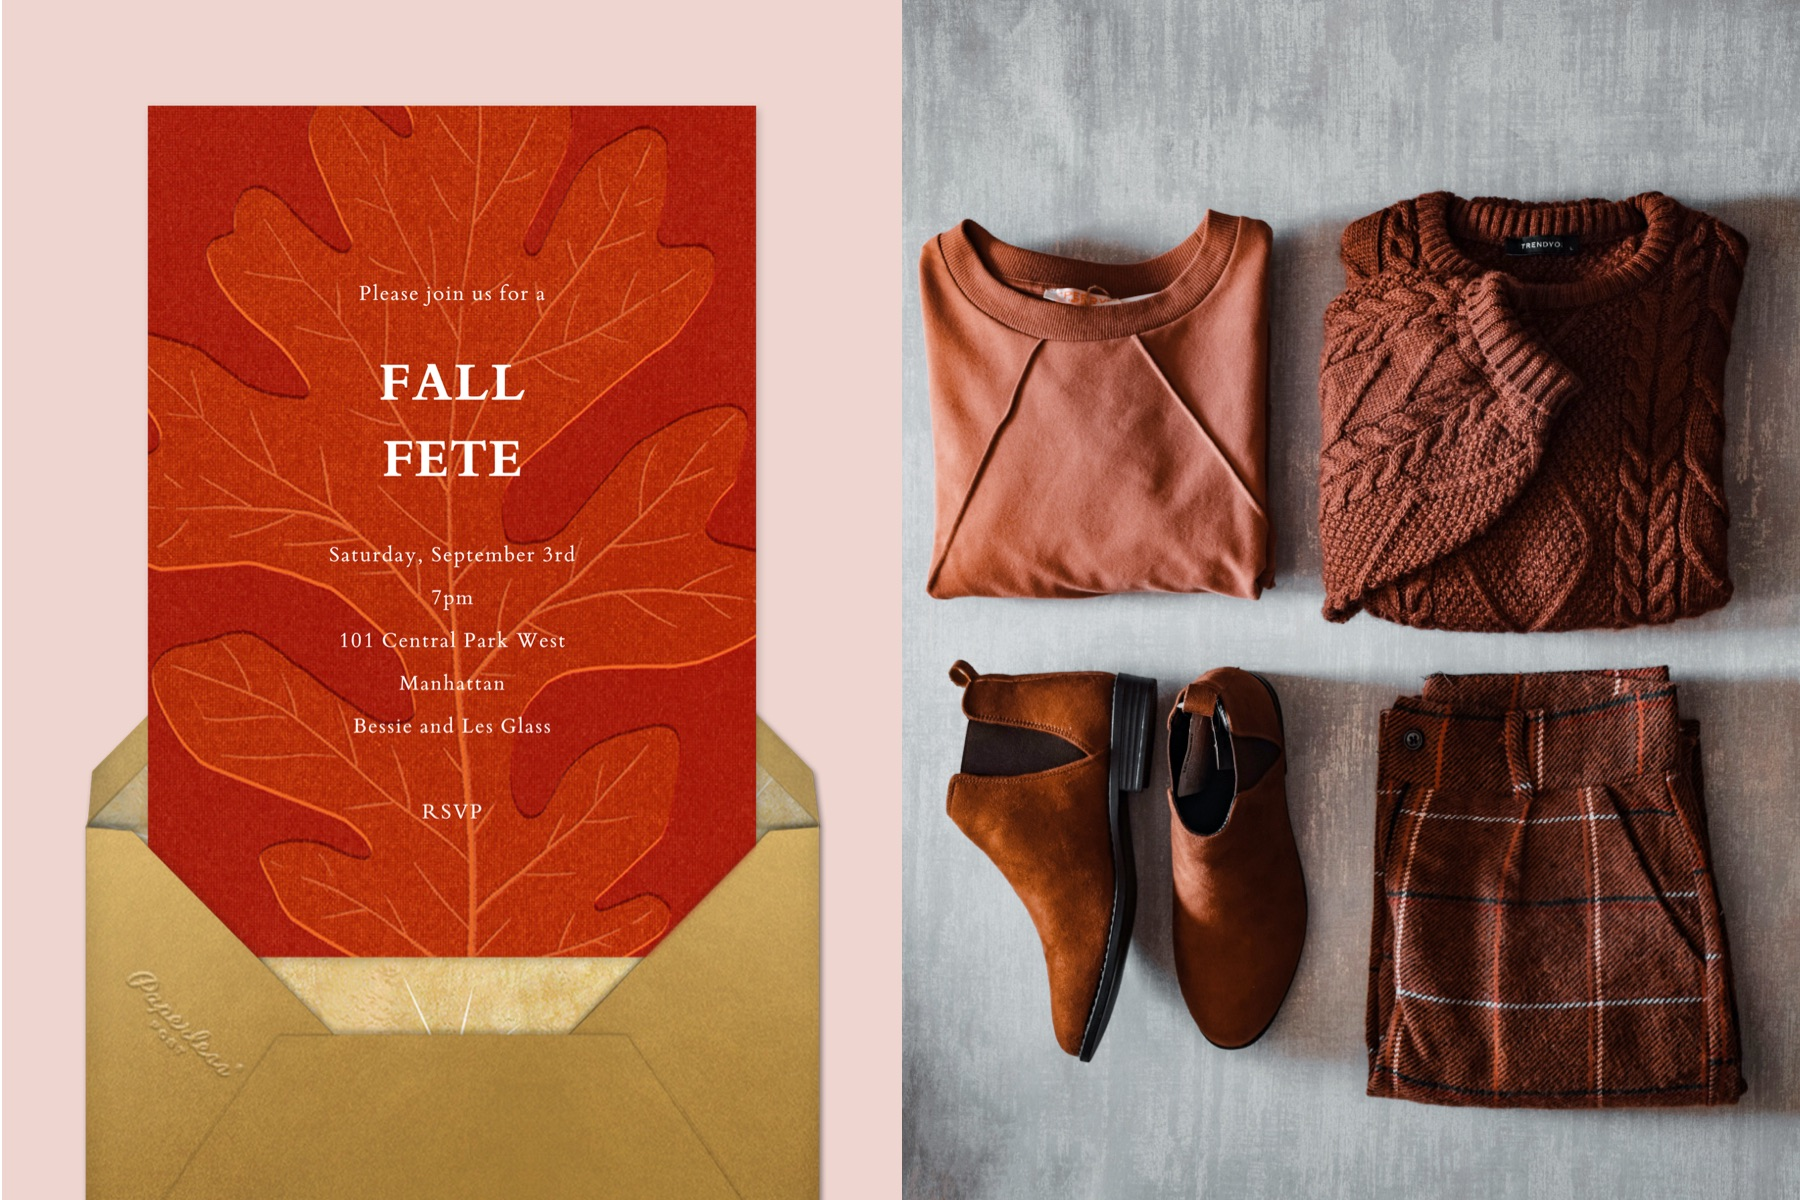 A red party invitation with a large oak leaf   Right: a flat-lay of folded brown autumnal clothing.